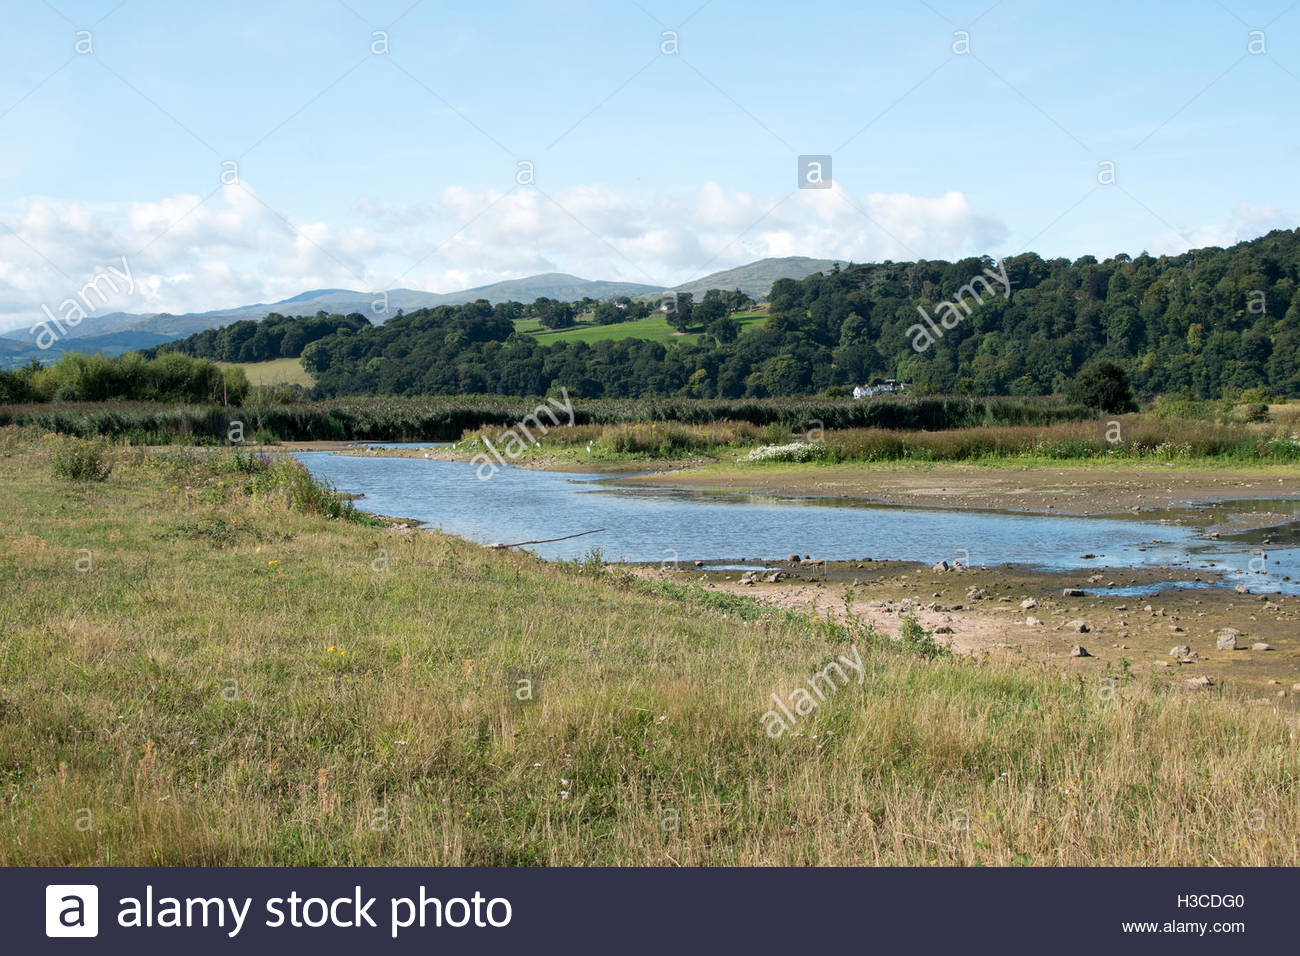 Conwy Nature Reserve Llandudno Junction, Conwy RSPB nature reserve Stock Photo, Royalty Free Image ...